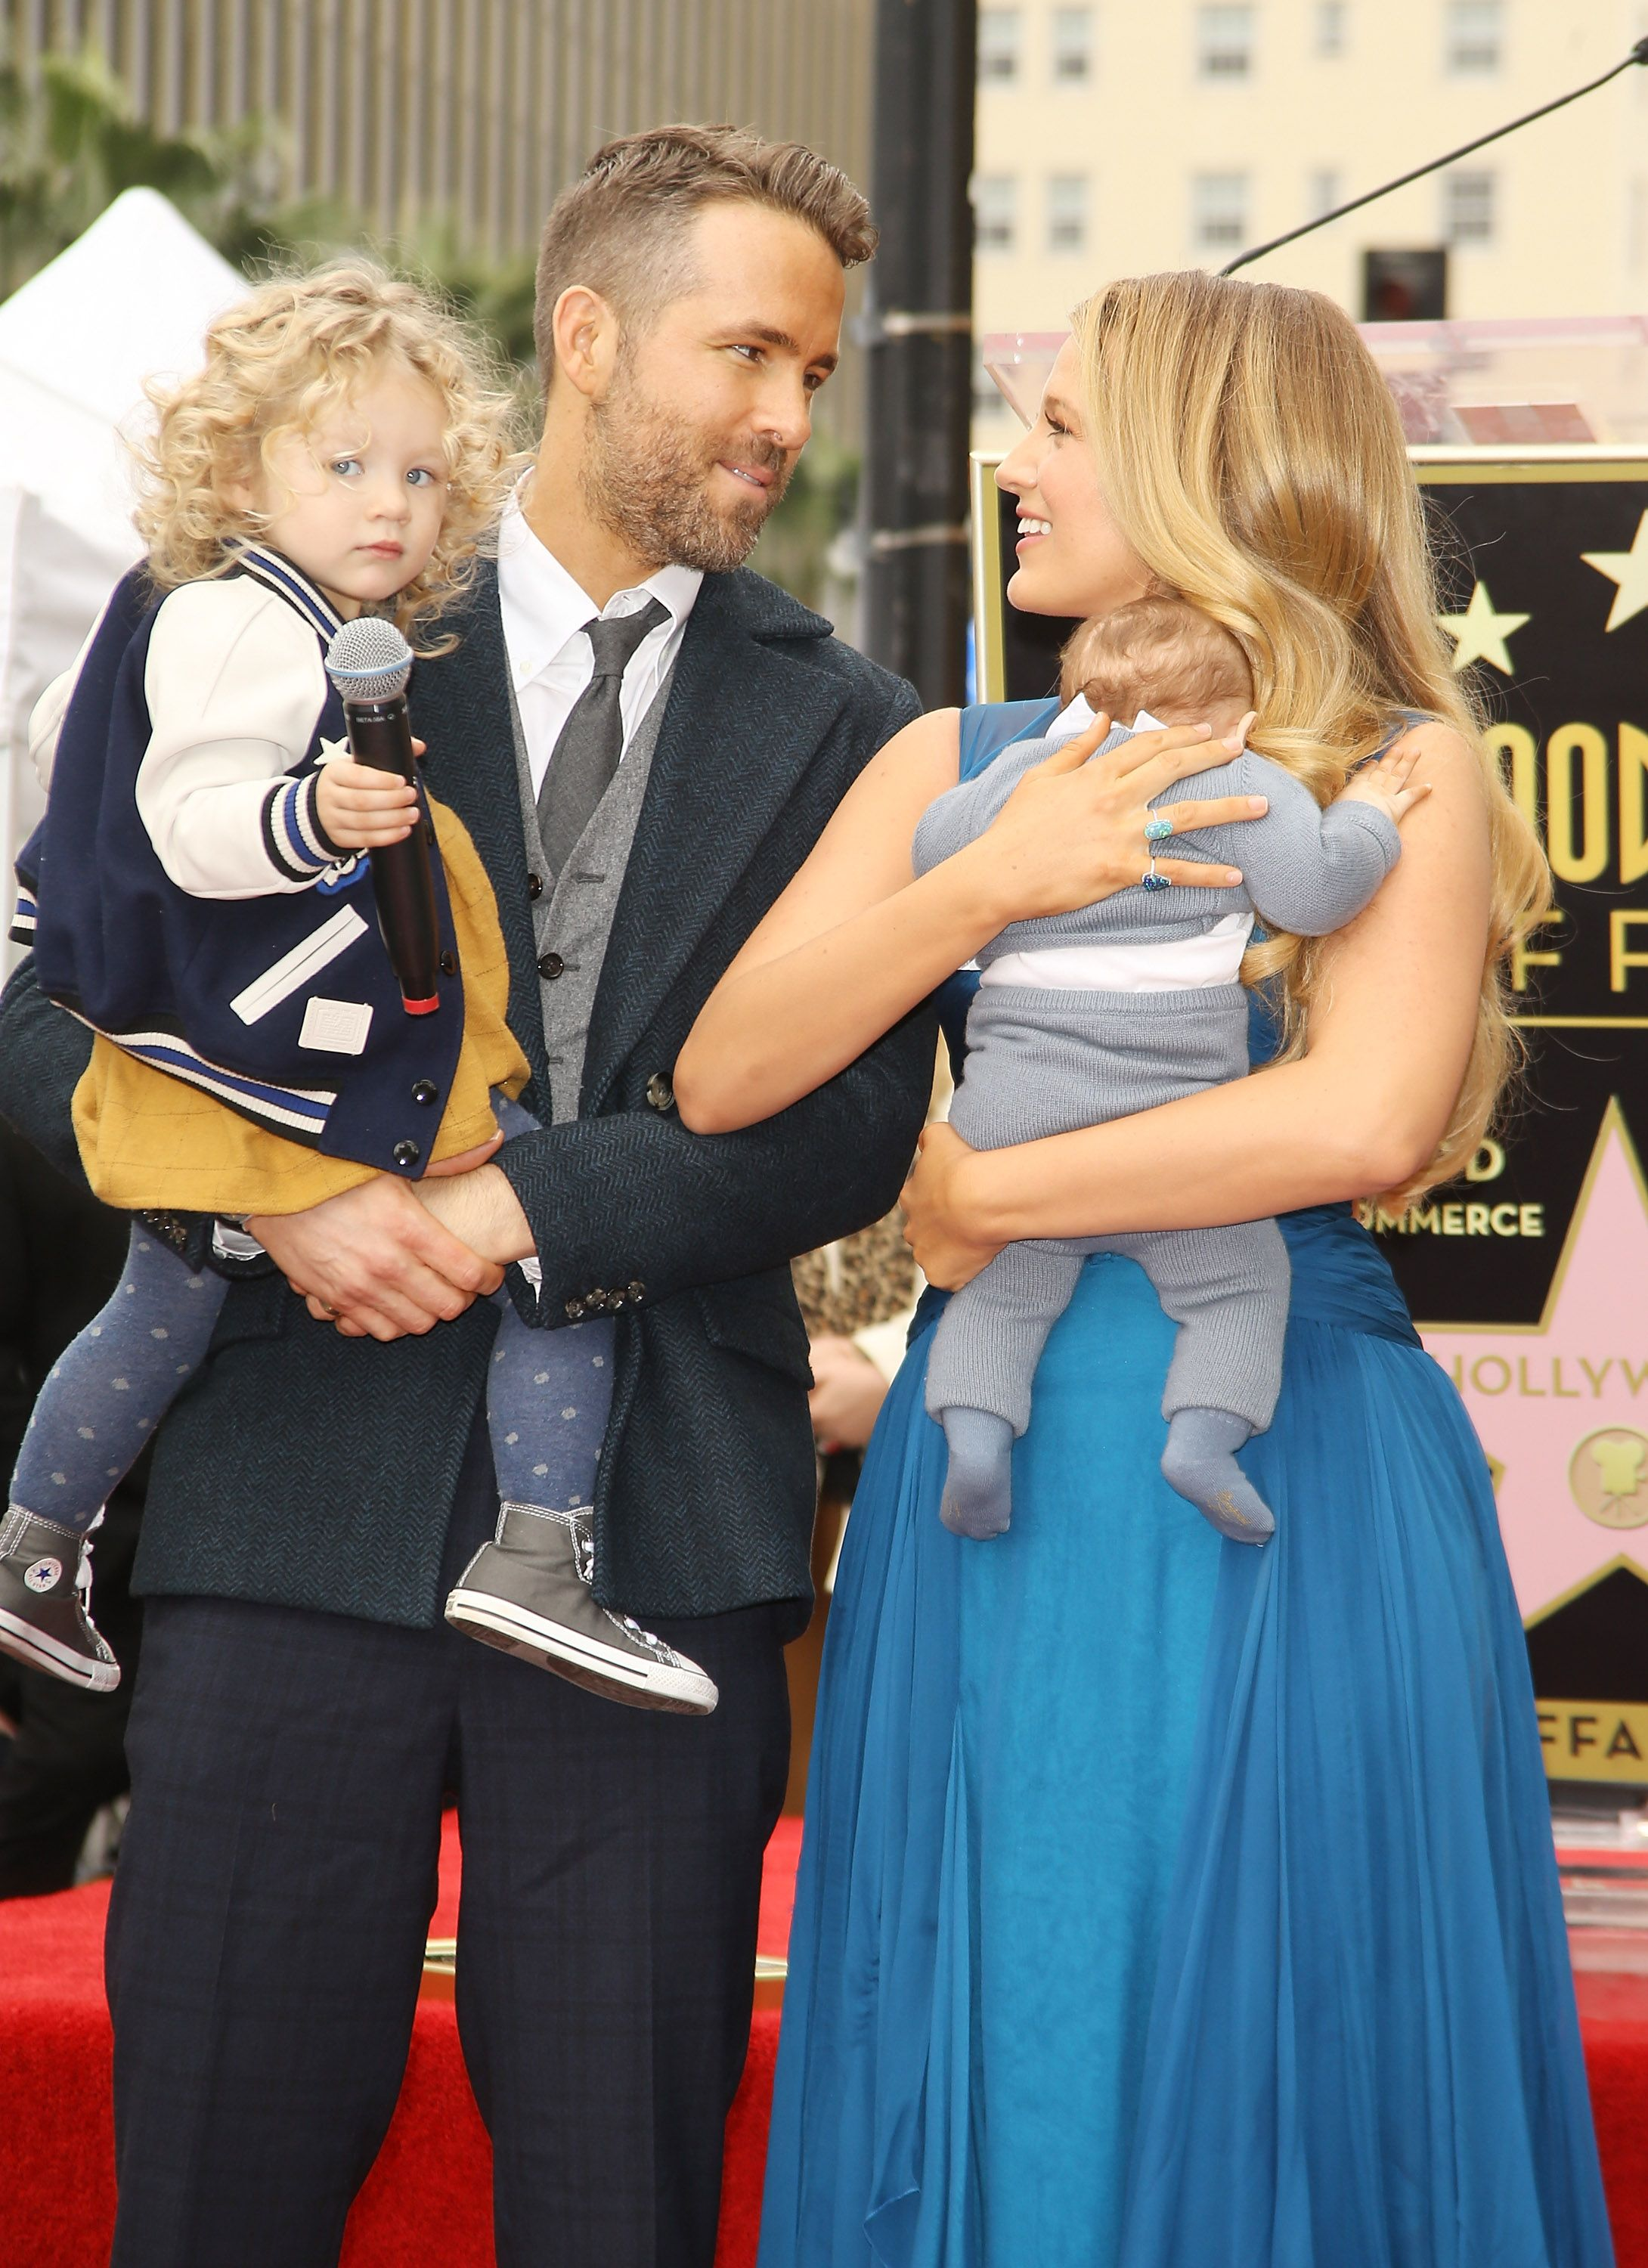 Taylor Swift confirms Blake Lively and Ryan Reynolds' daughter has a cameo on her album